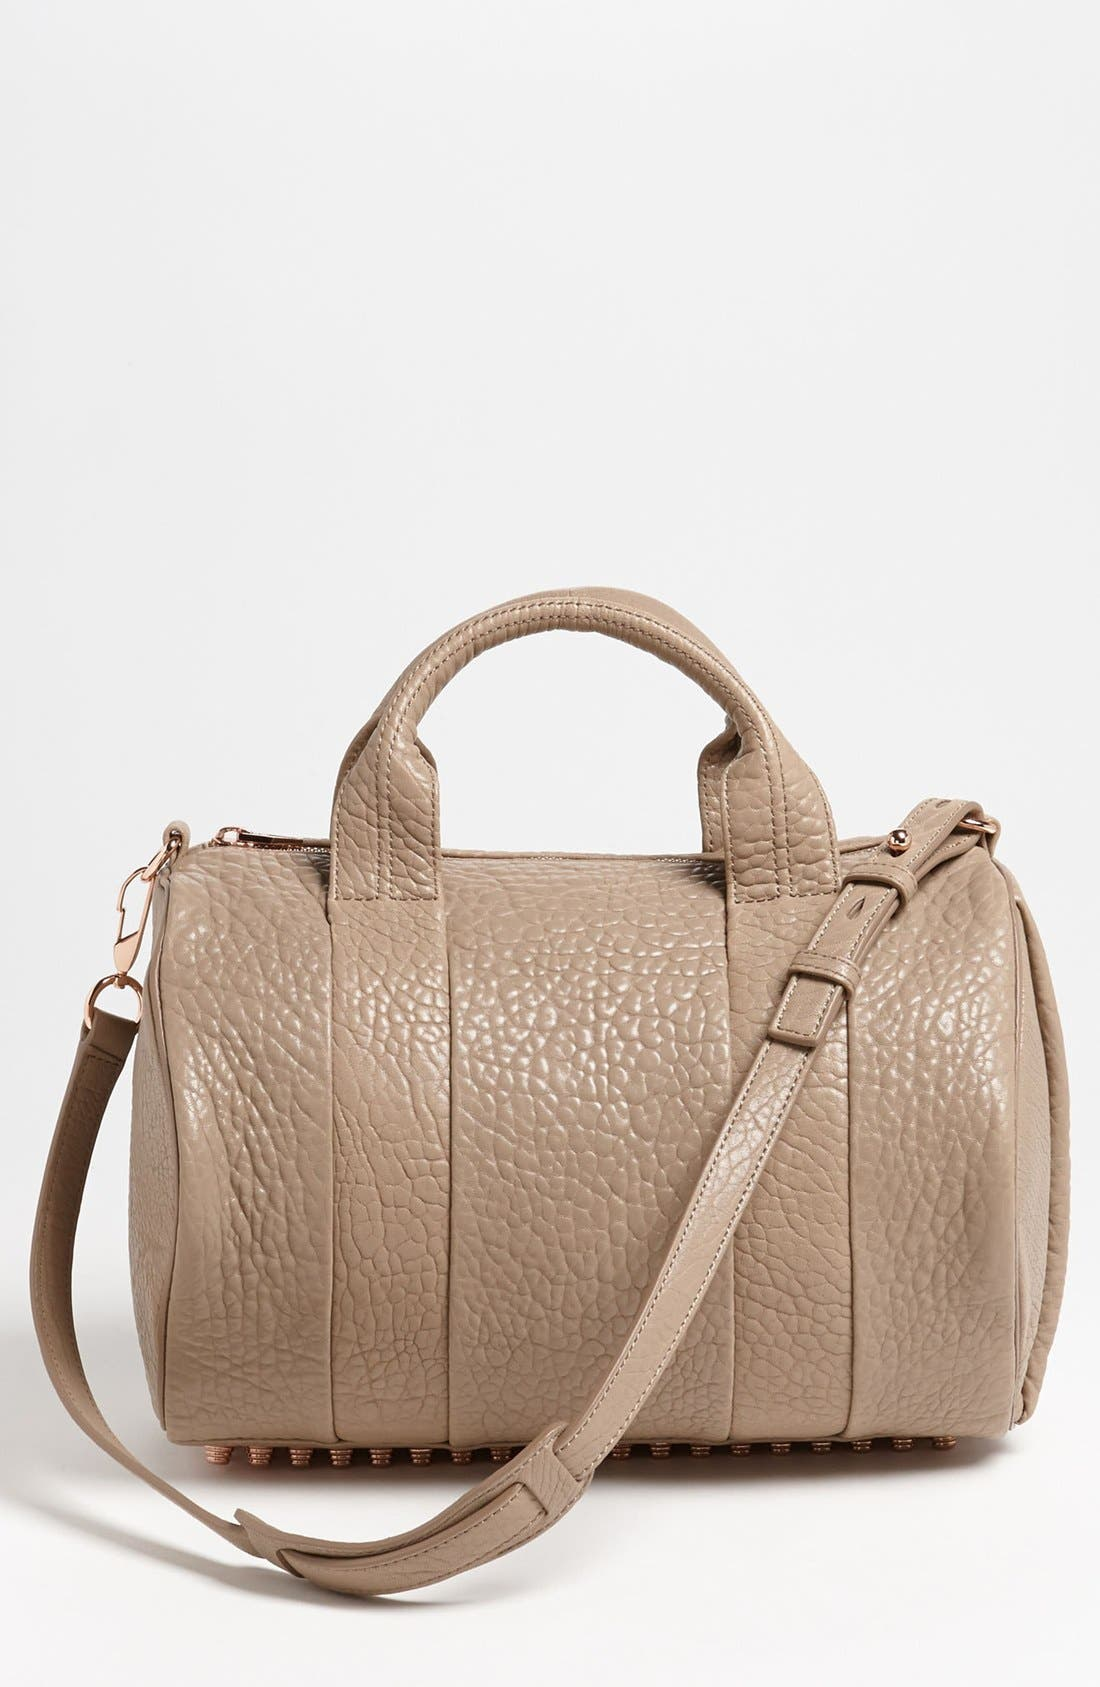 Main Image - Alexander Wang 'Rocco - Rosegold' Leather Satchel